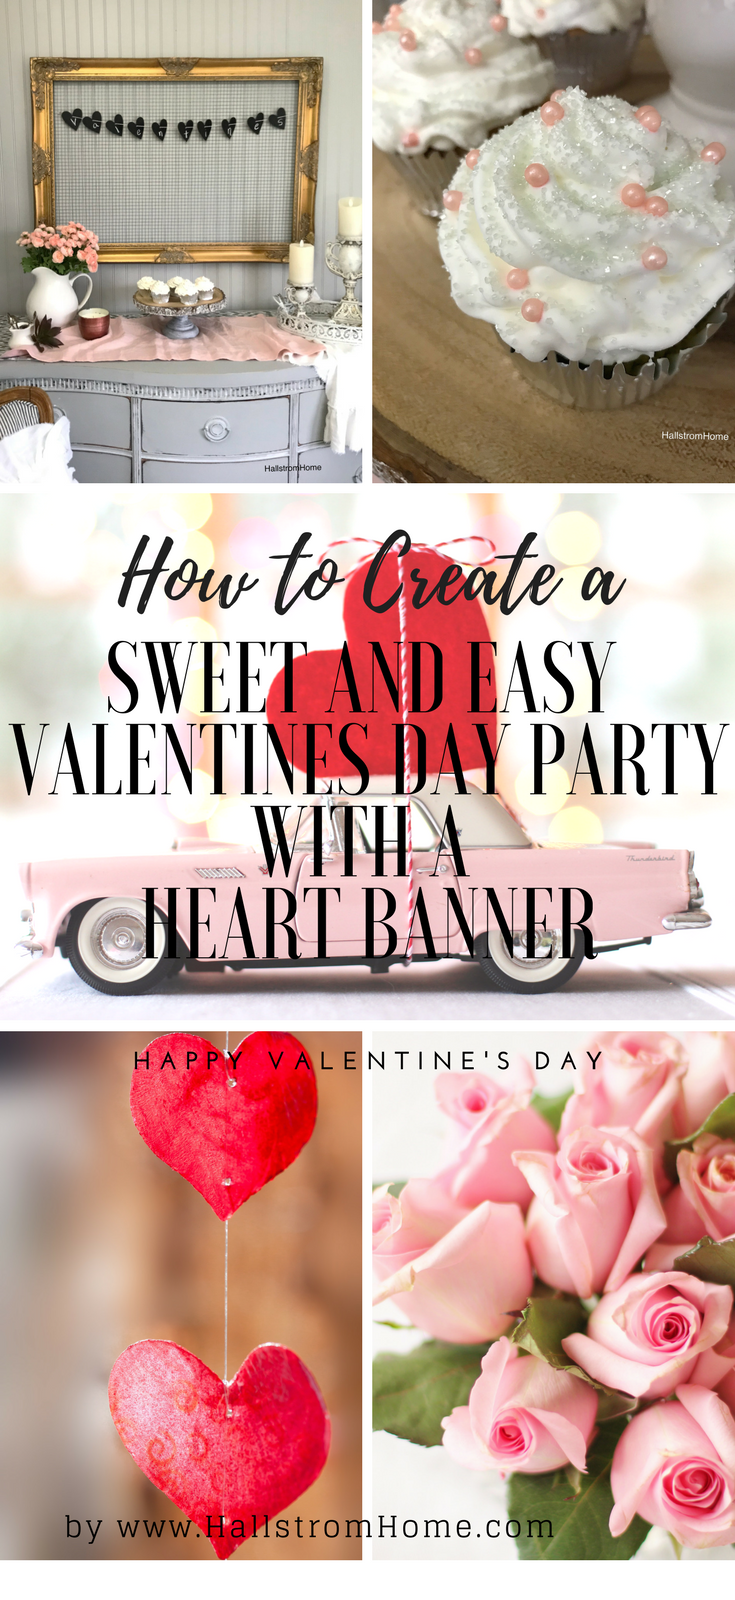 How to make a sweet and easy valentines day